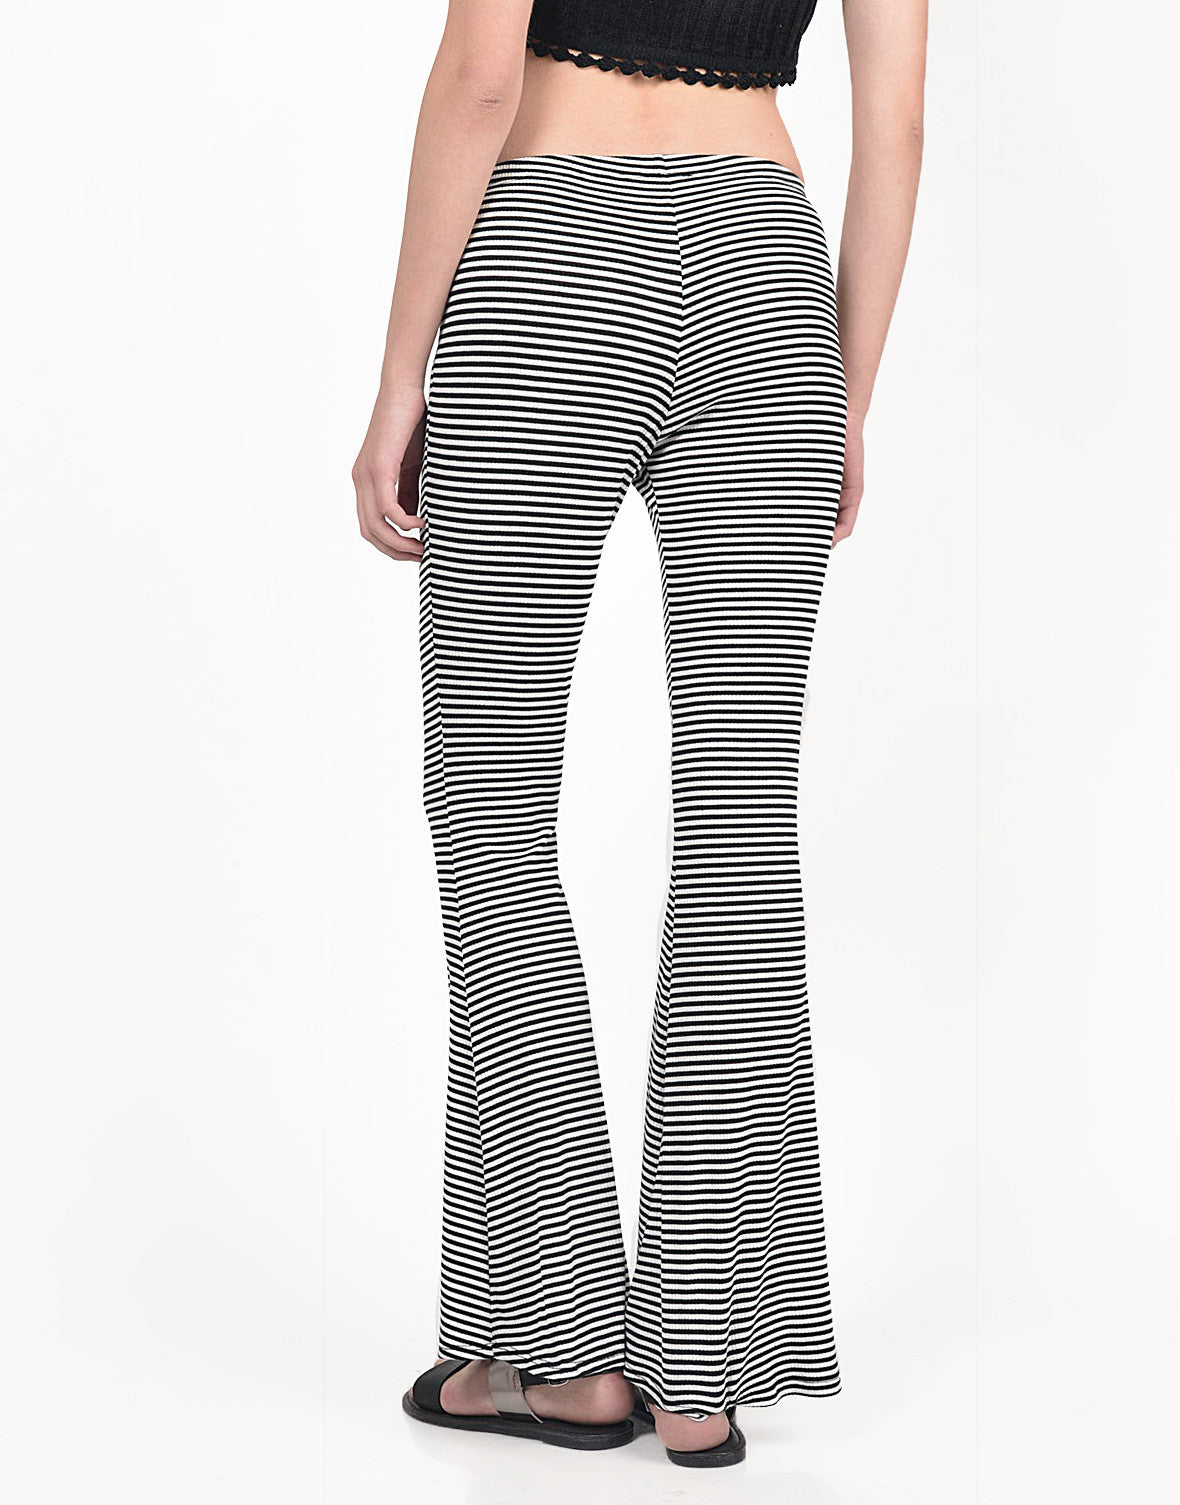 Back View of Black and White Striped Flared Pants